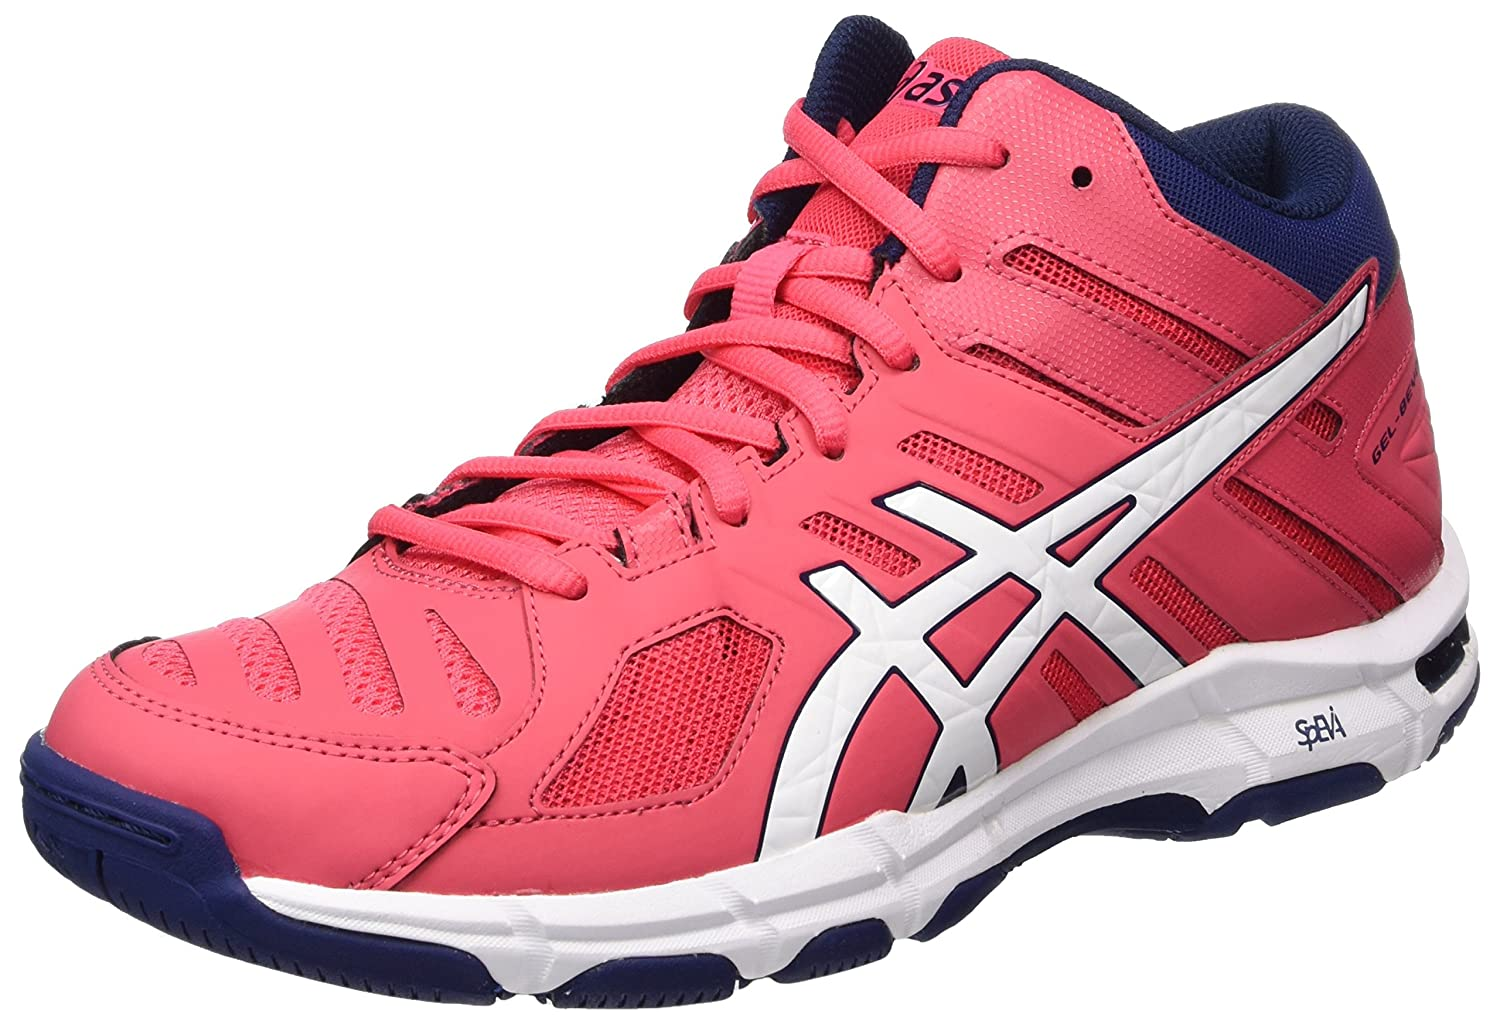 Asics Women S Gel Beyond 5 Mt Volleyball Shoes Red Rouge Red White Indigo Blue 8 Uk Amazon Co Uk Shoes Bags